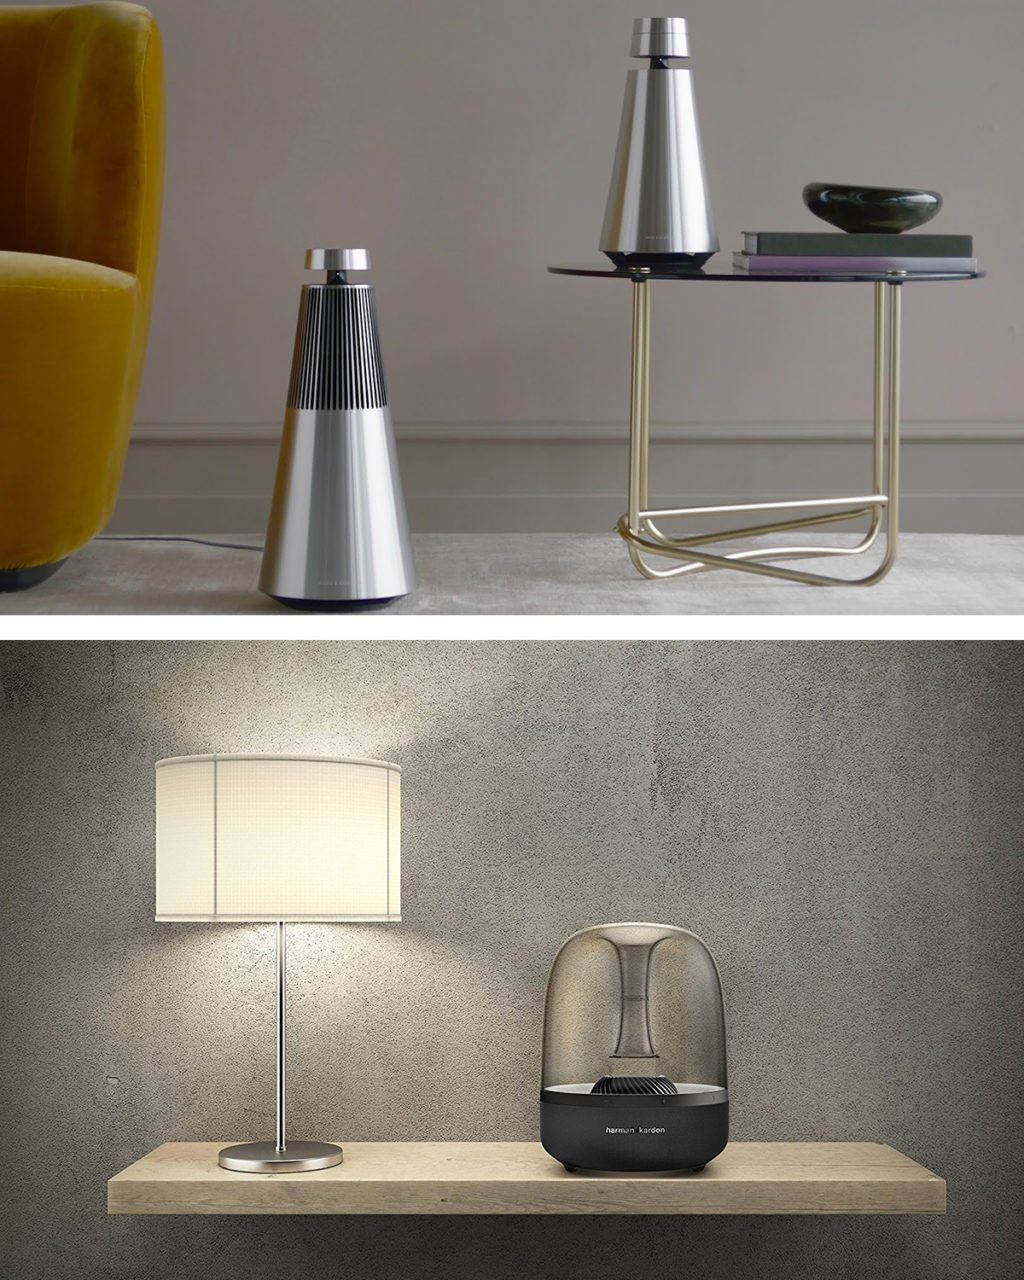 Architech | Speaker senza fili di design